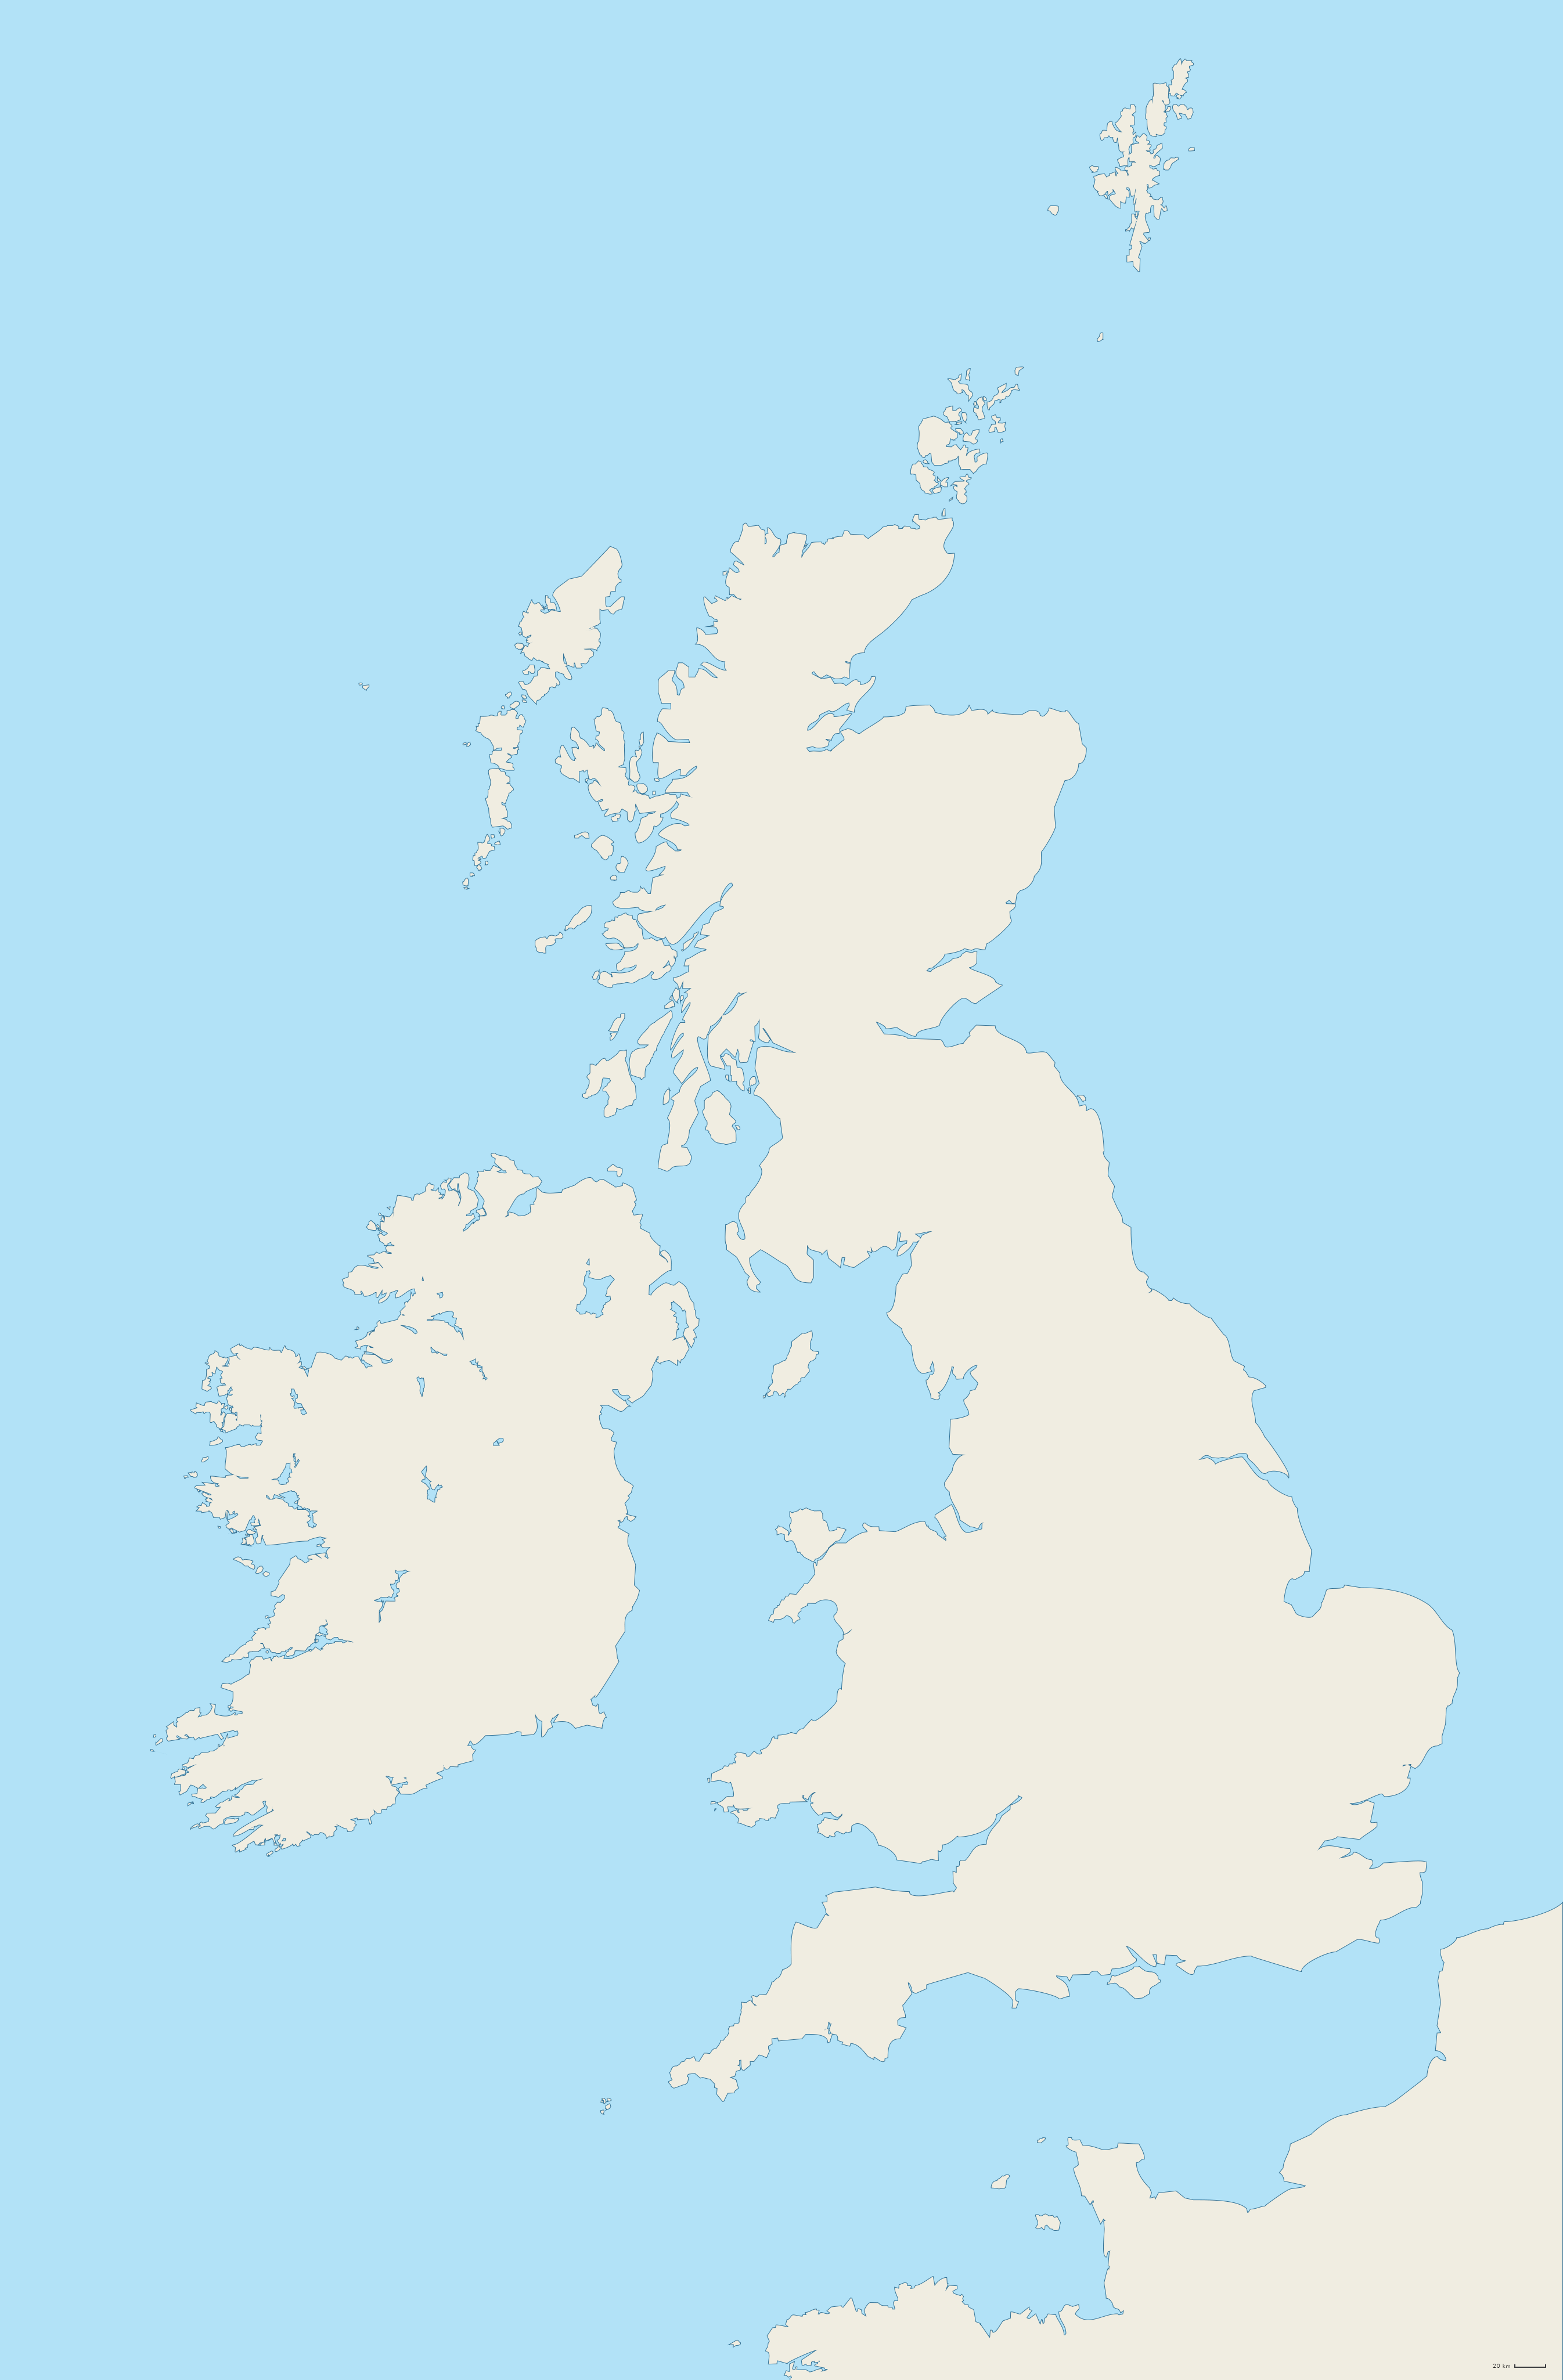 Blank Map of the British Isles (Collection) by ImDeadPanda on DeviantArt